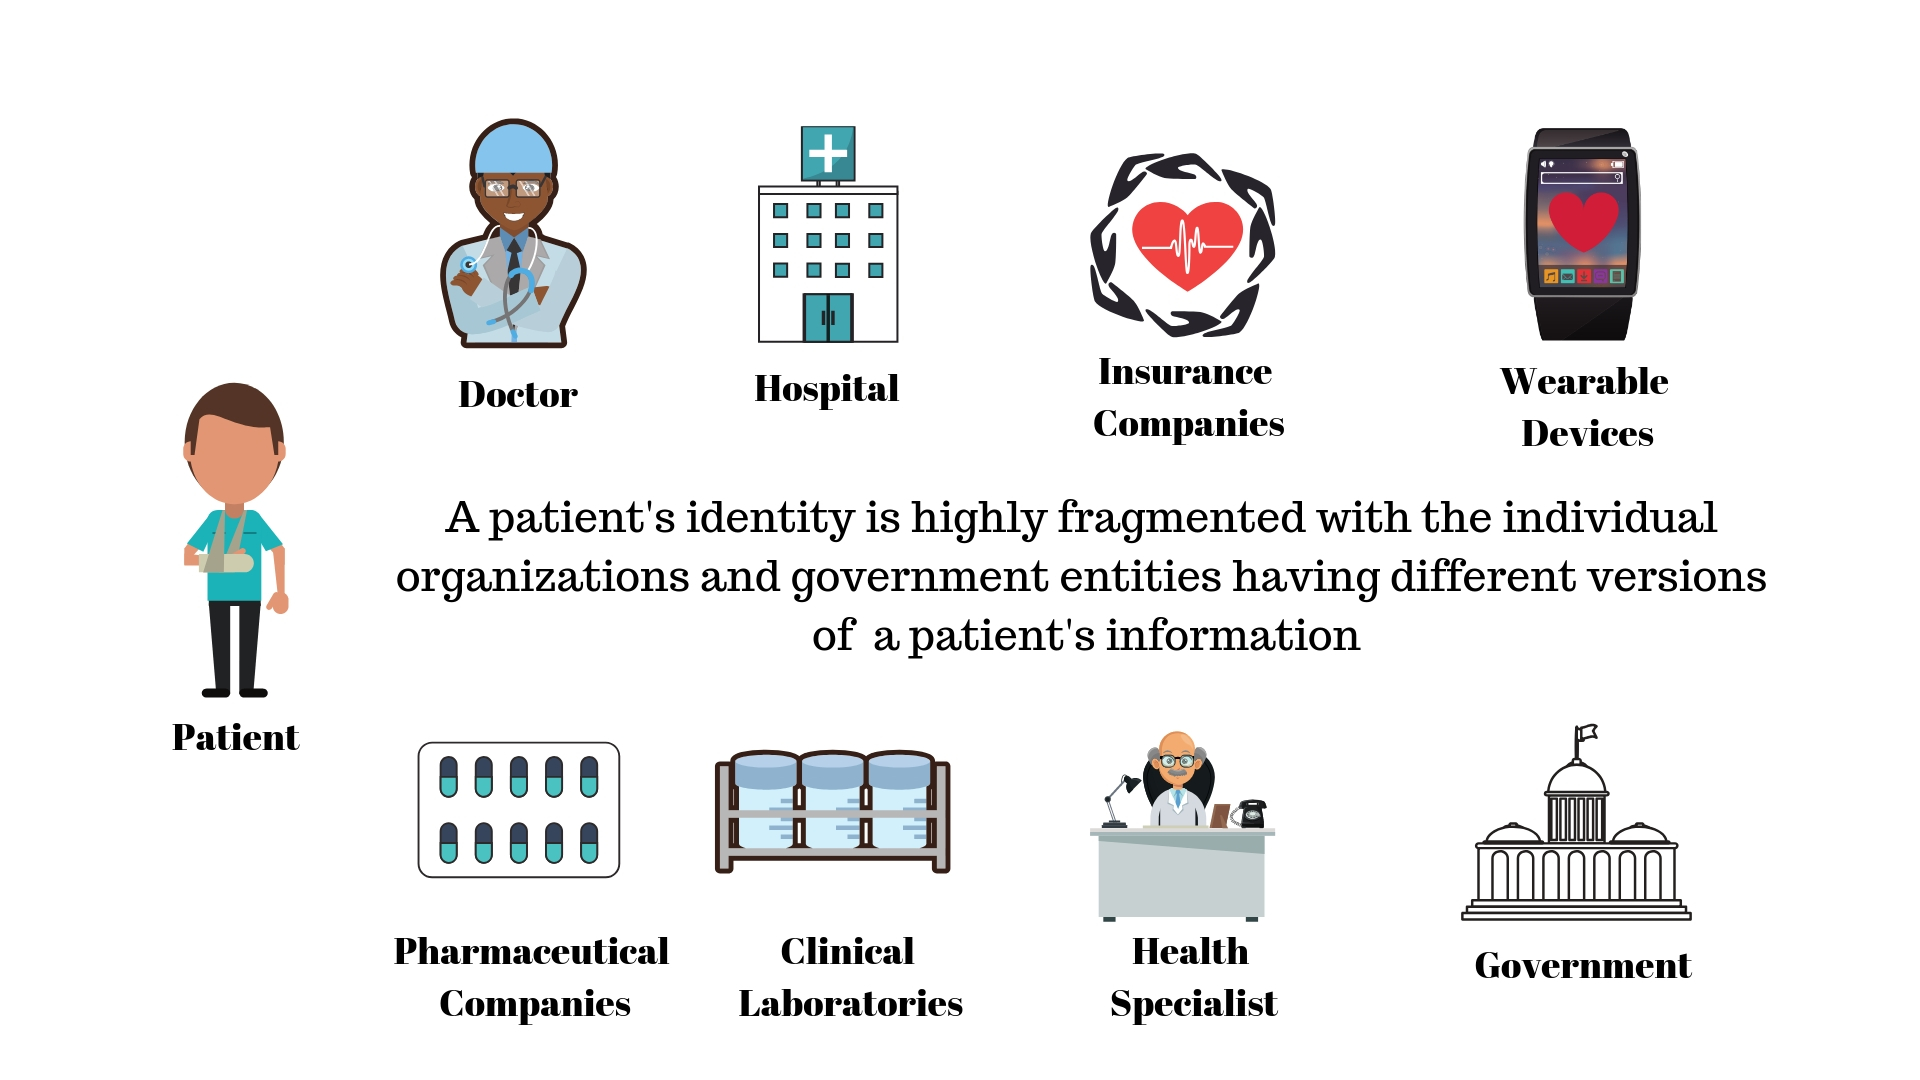 Fragmented Identity of Patient